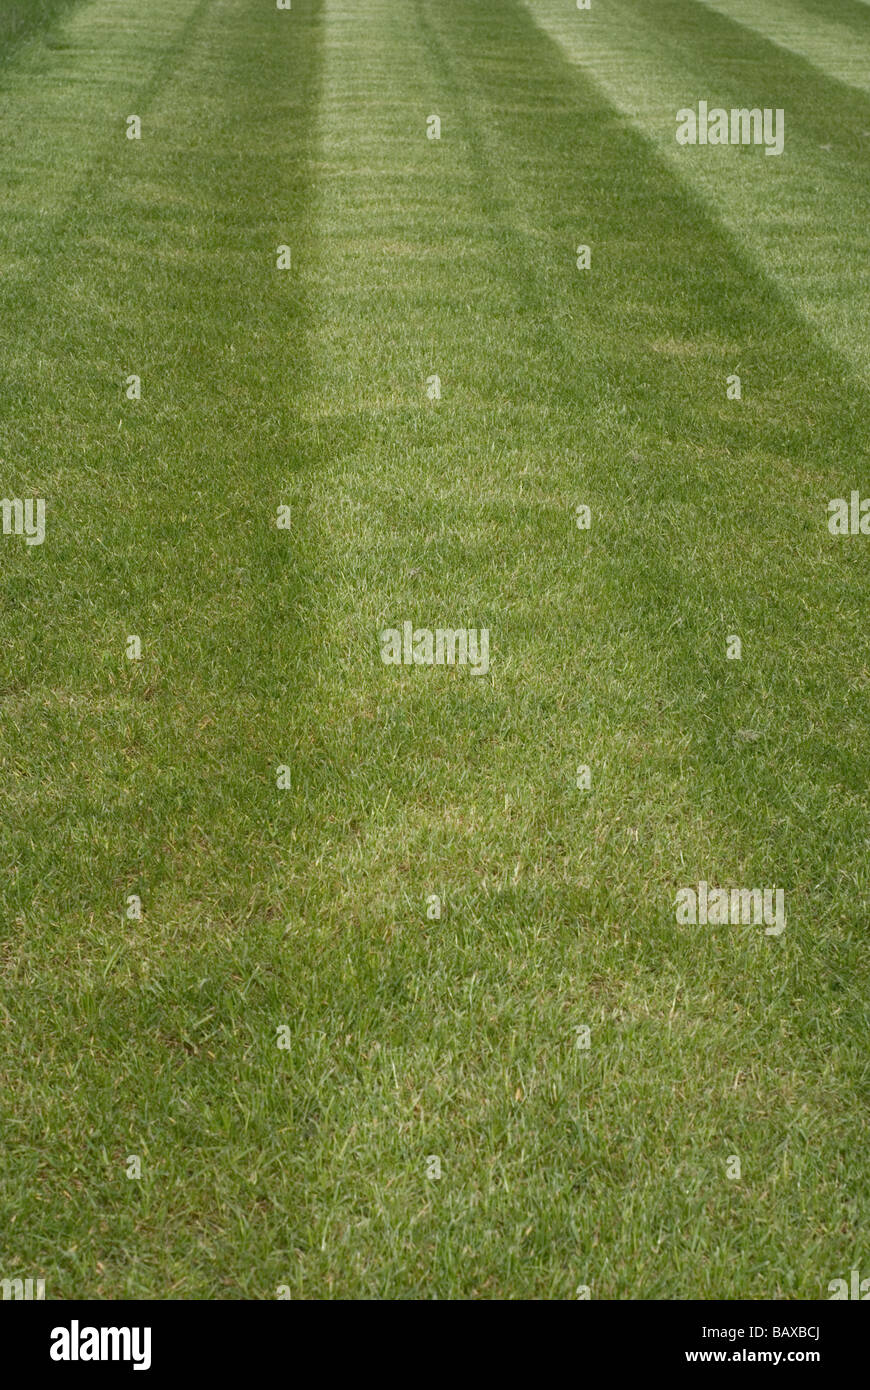 Freshly Cut Grass Lawn - Stock Image